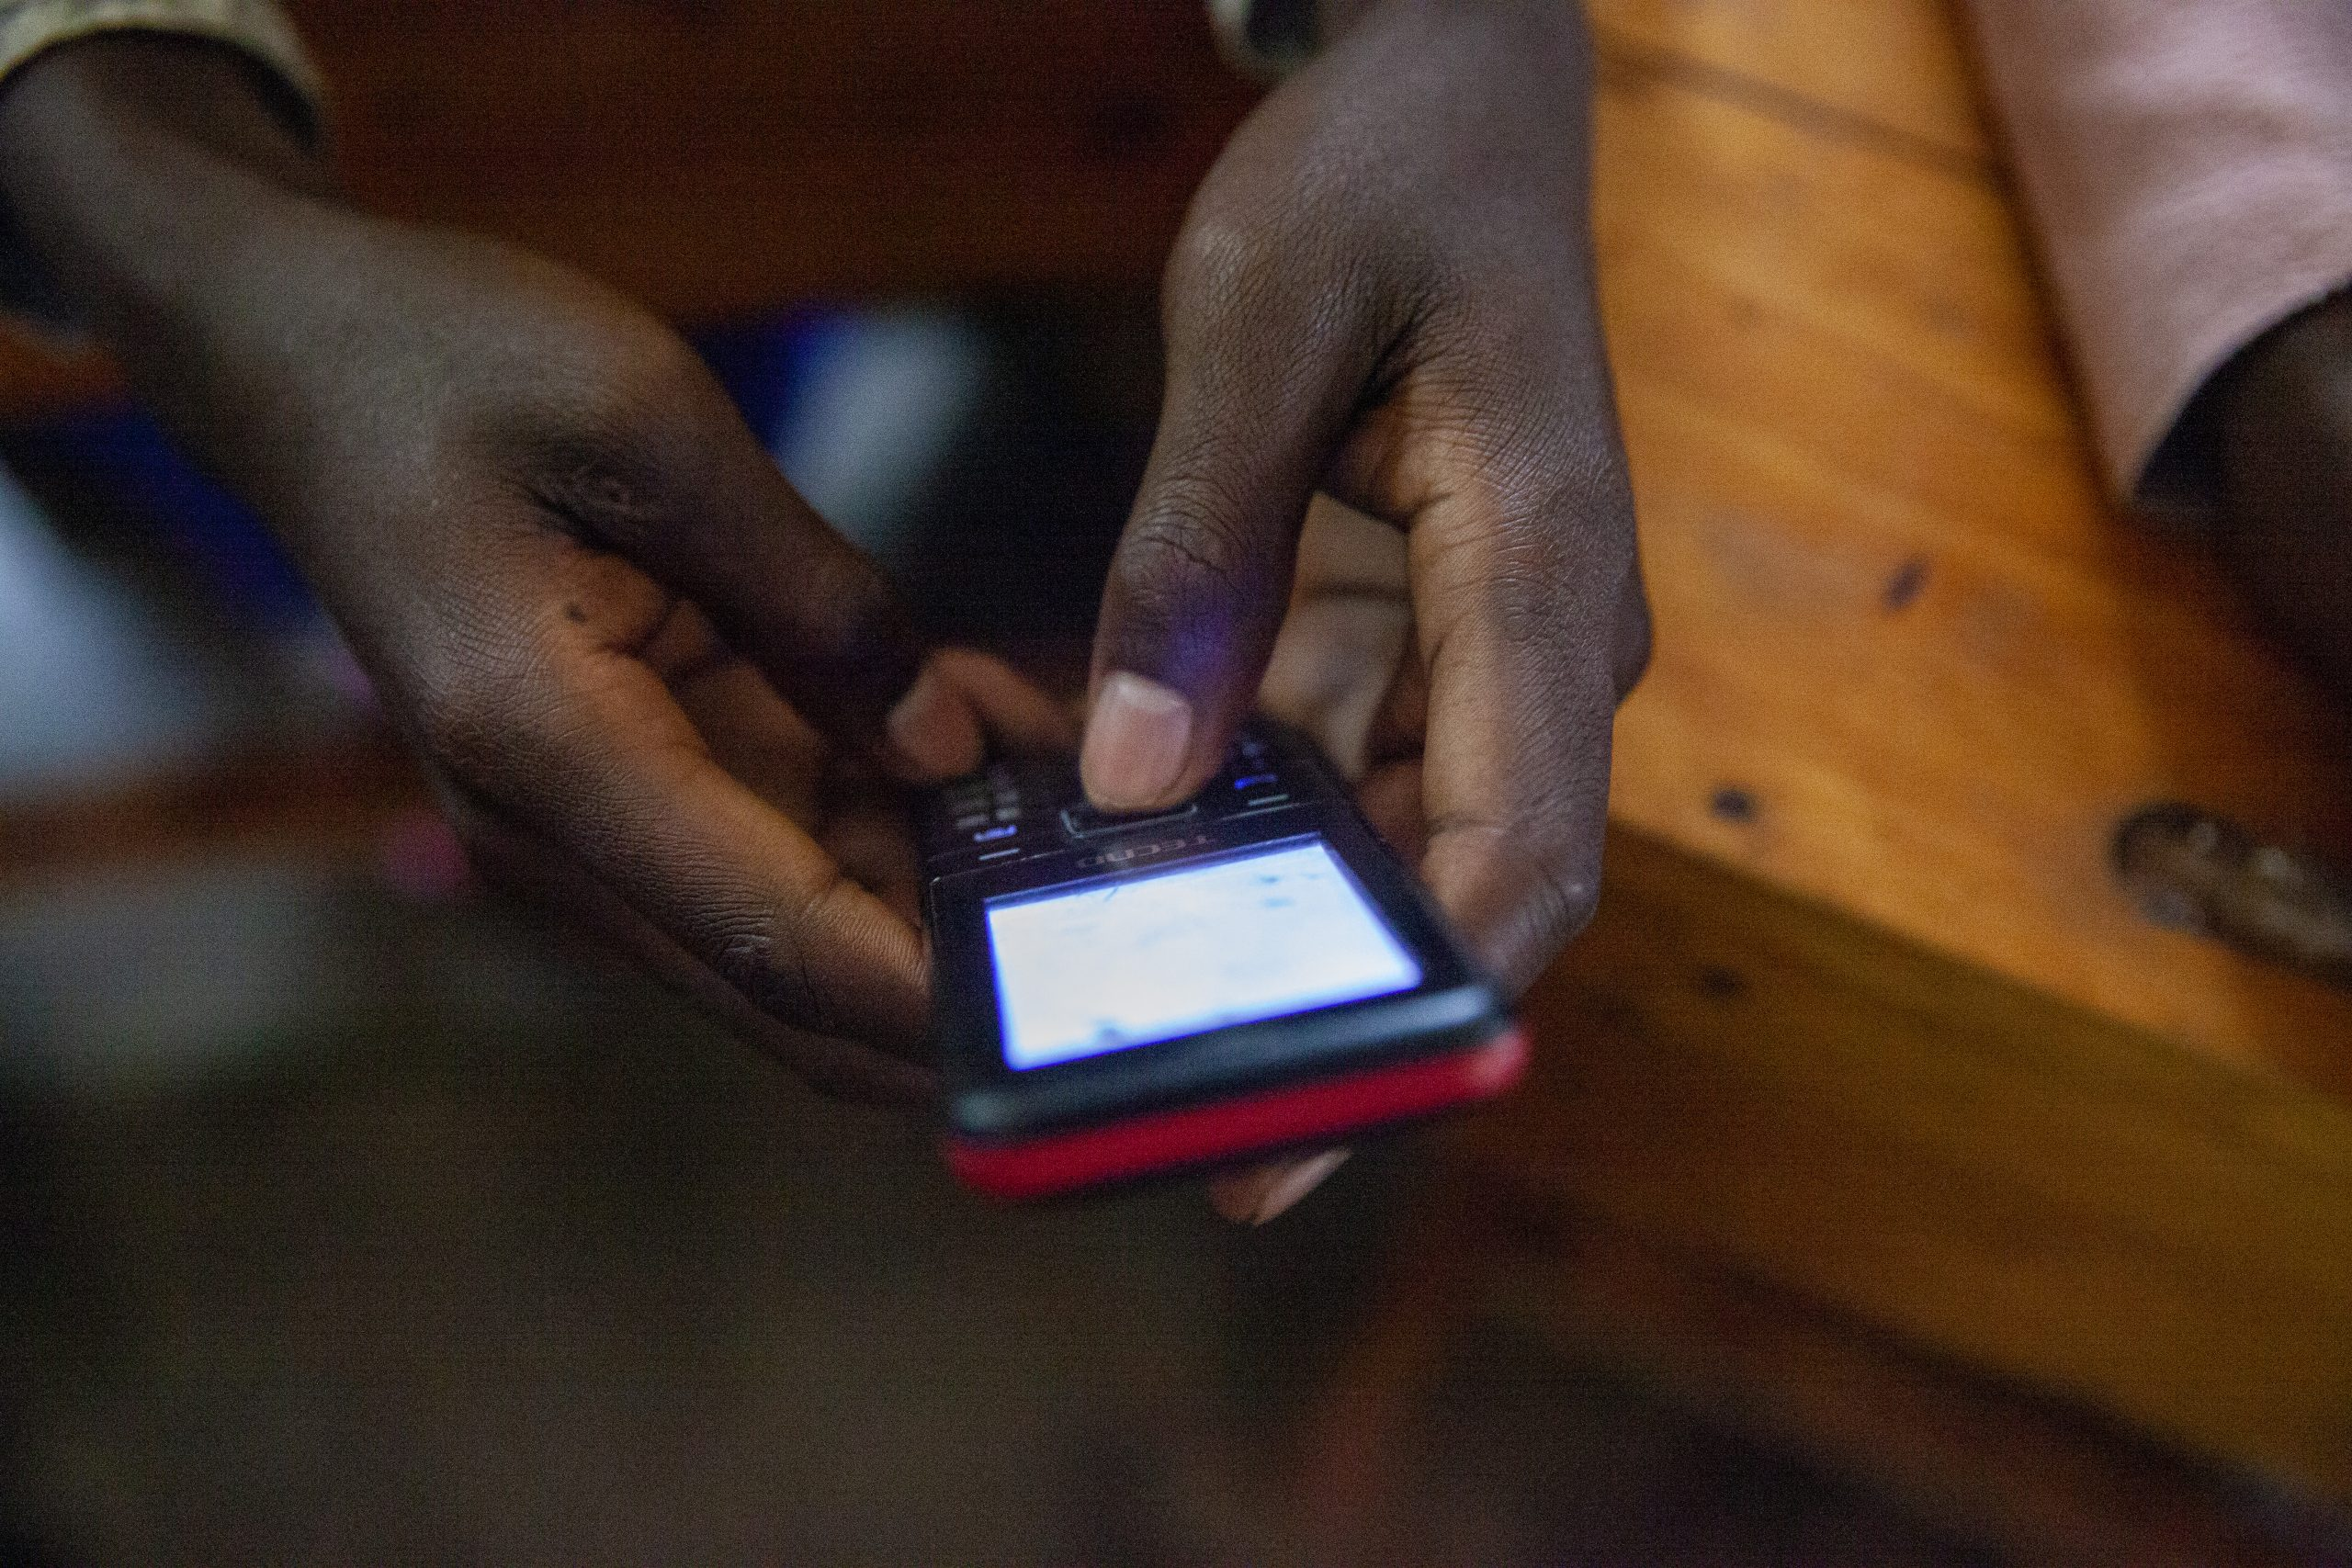 Will Covid-19 provide an opportunity for a step-change in the digital economy in Rwanda?